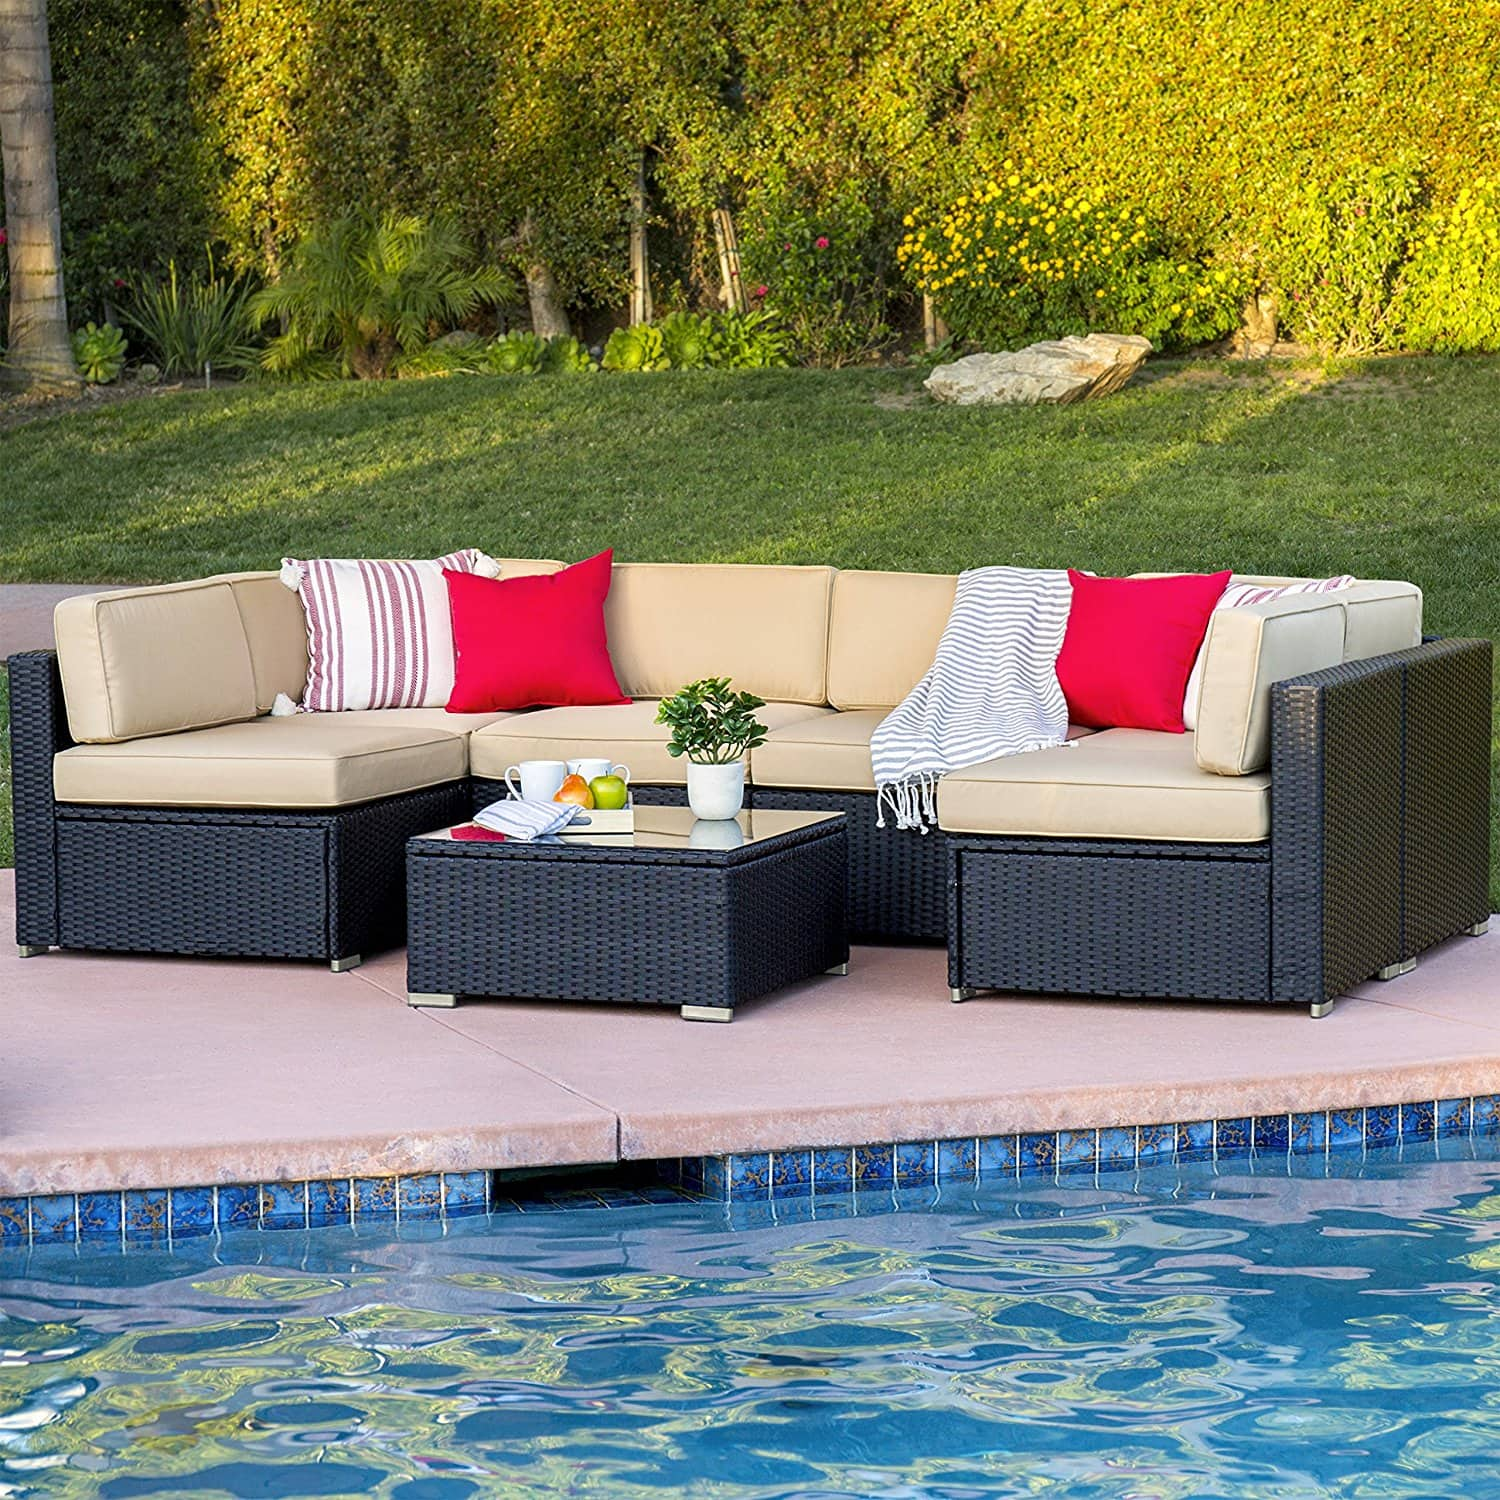 7 Piece Outdoor Wicker Sectional Sofa w Table Slickdeals